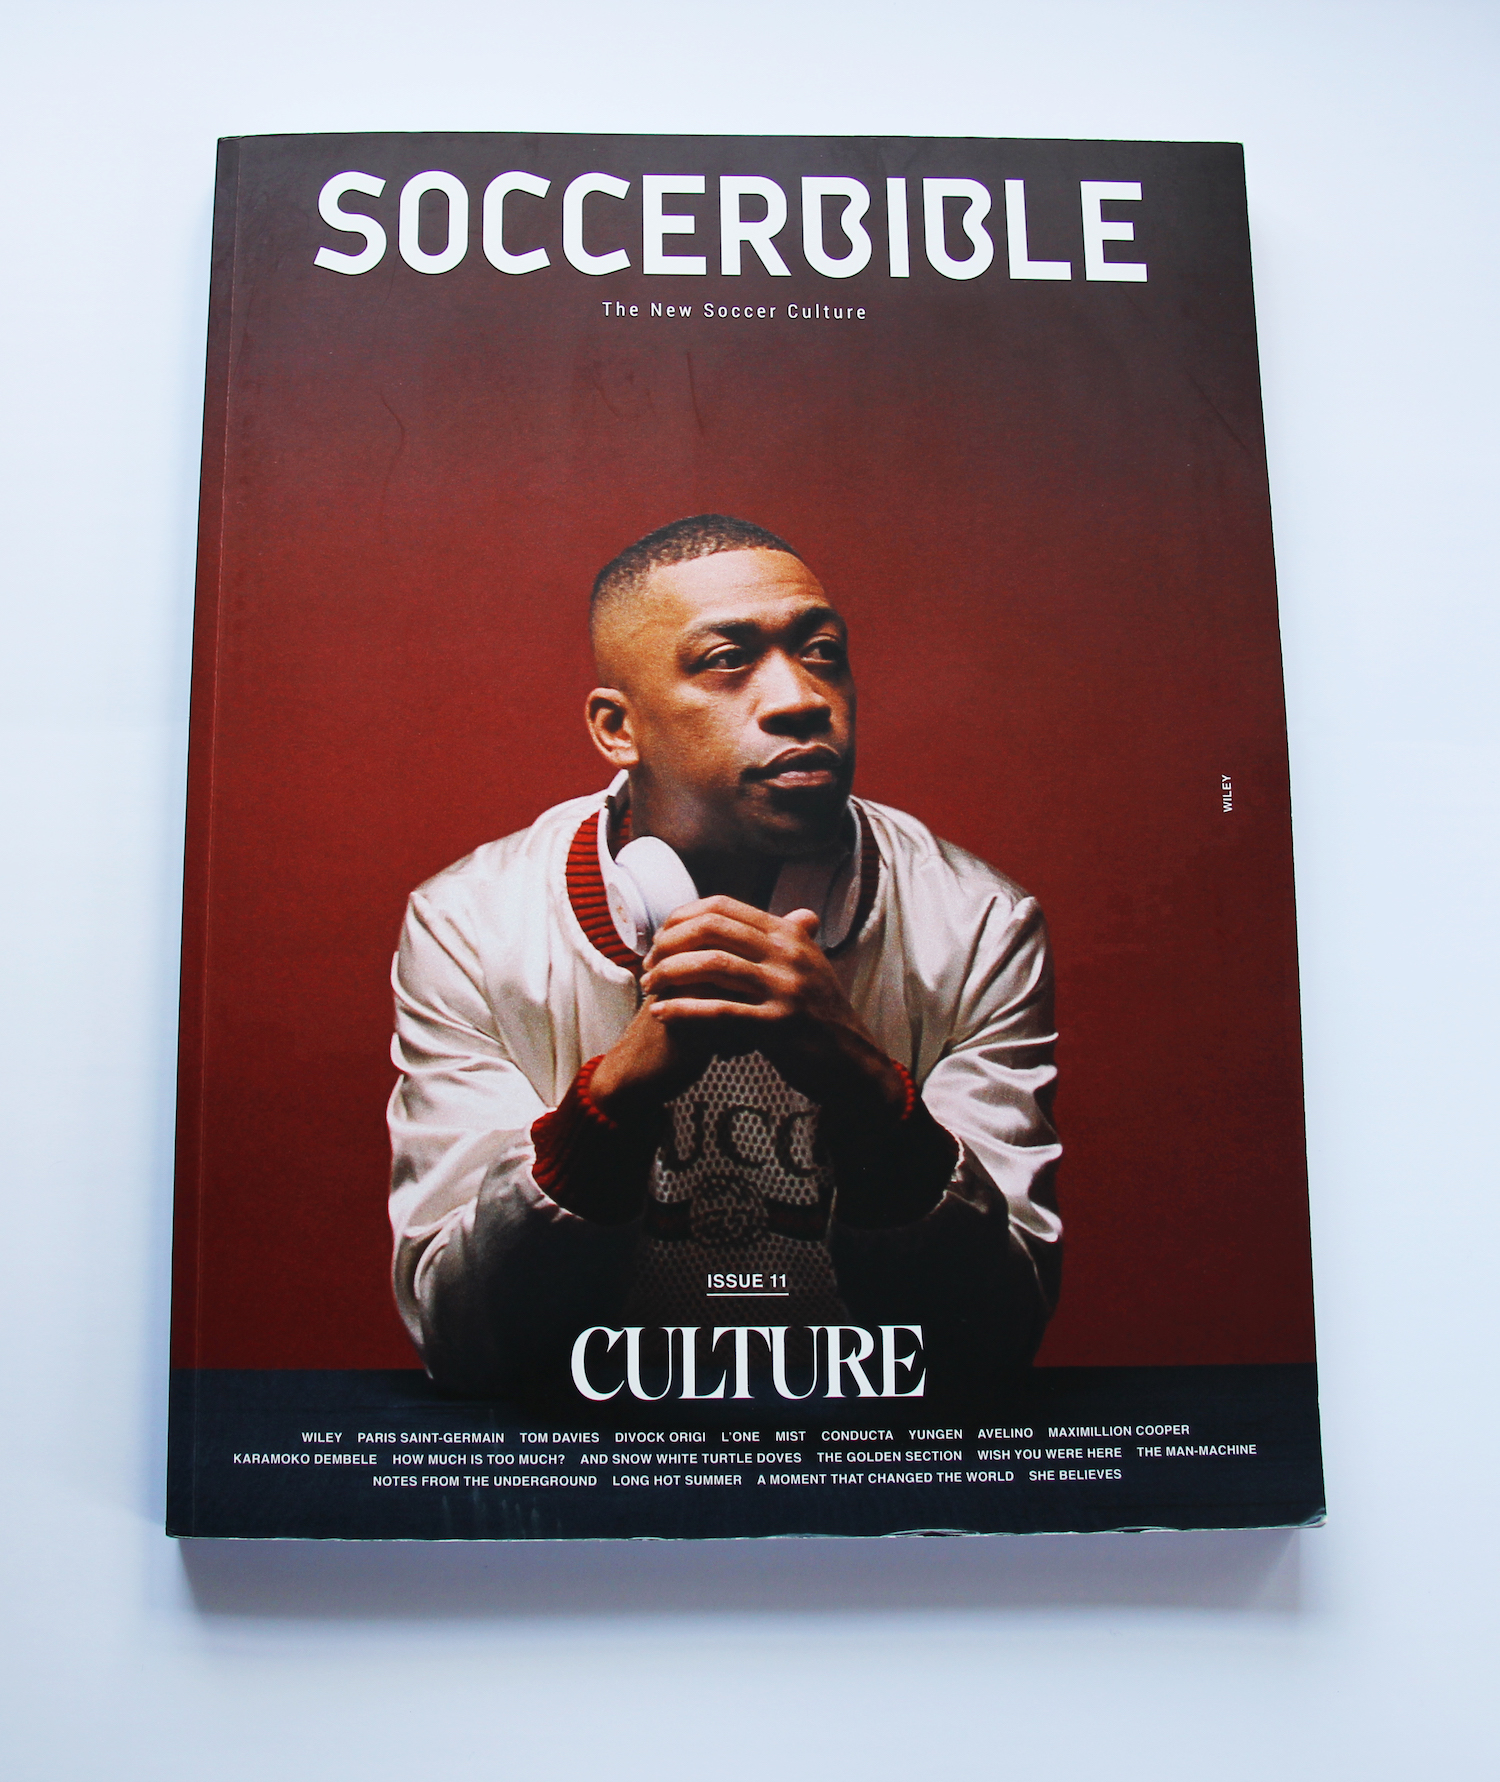 soccer-bible-cover